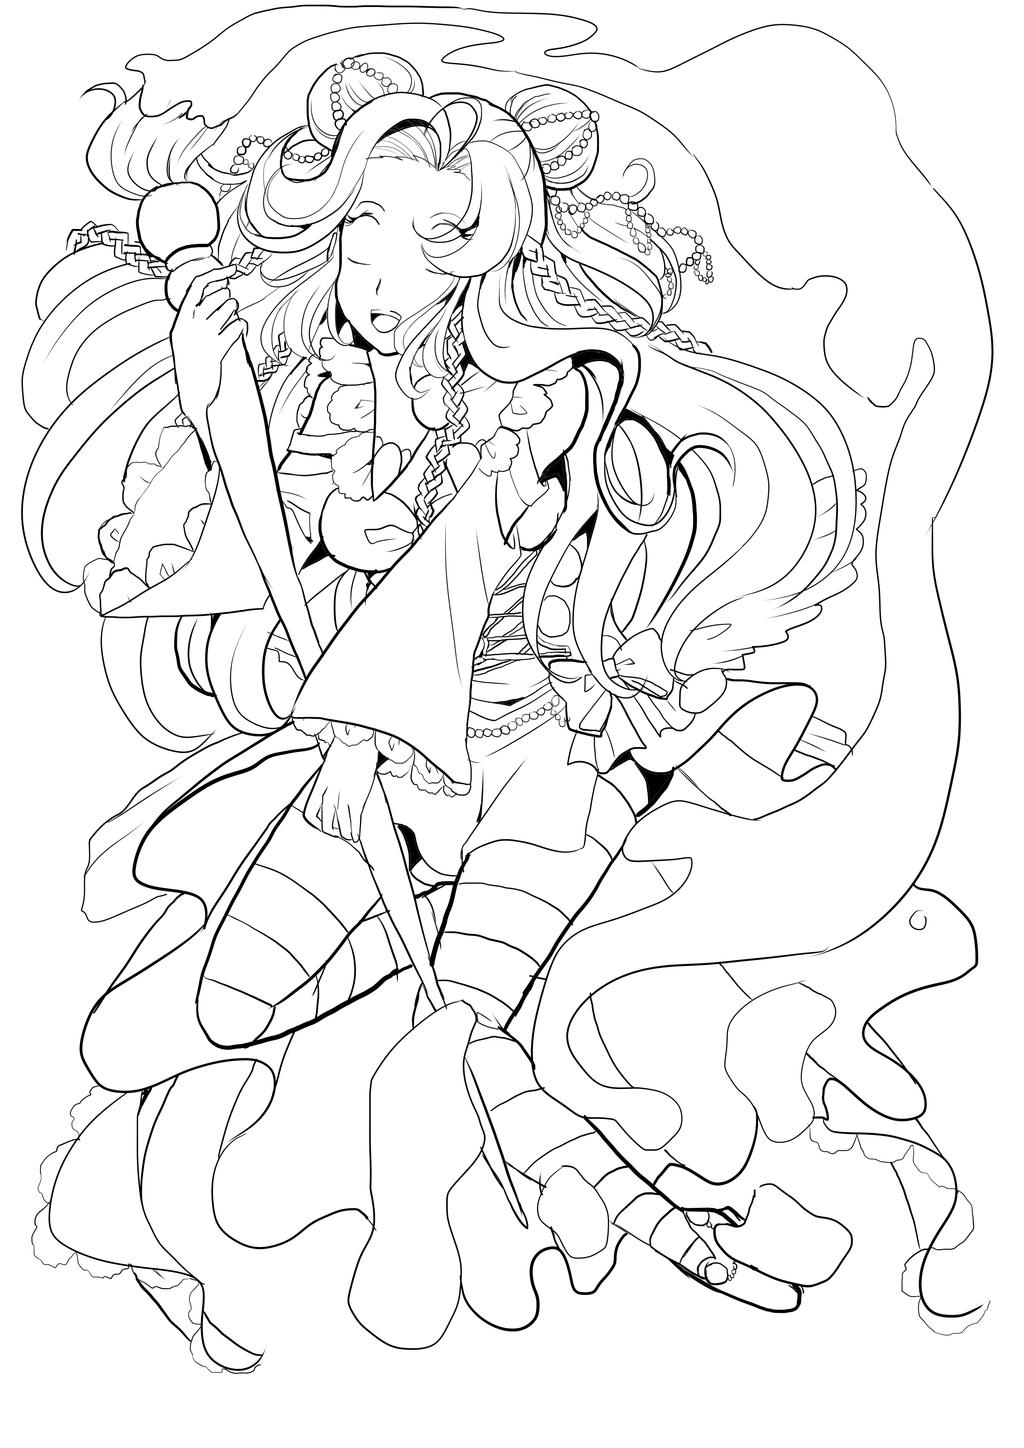 Line Drawing Rainbow : Rainbow draw this again lineart by twinkiesama on deviantart